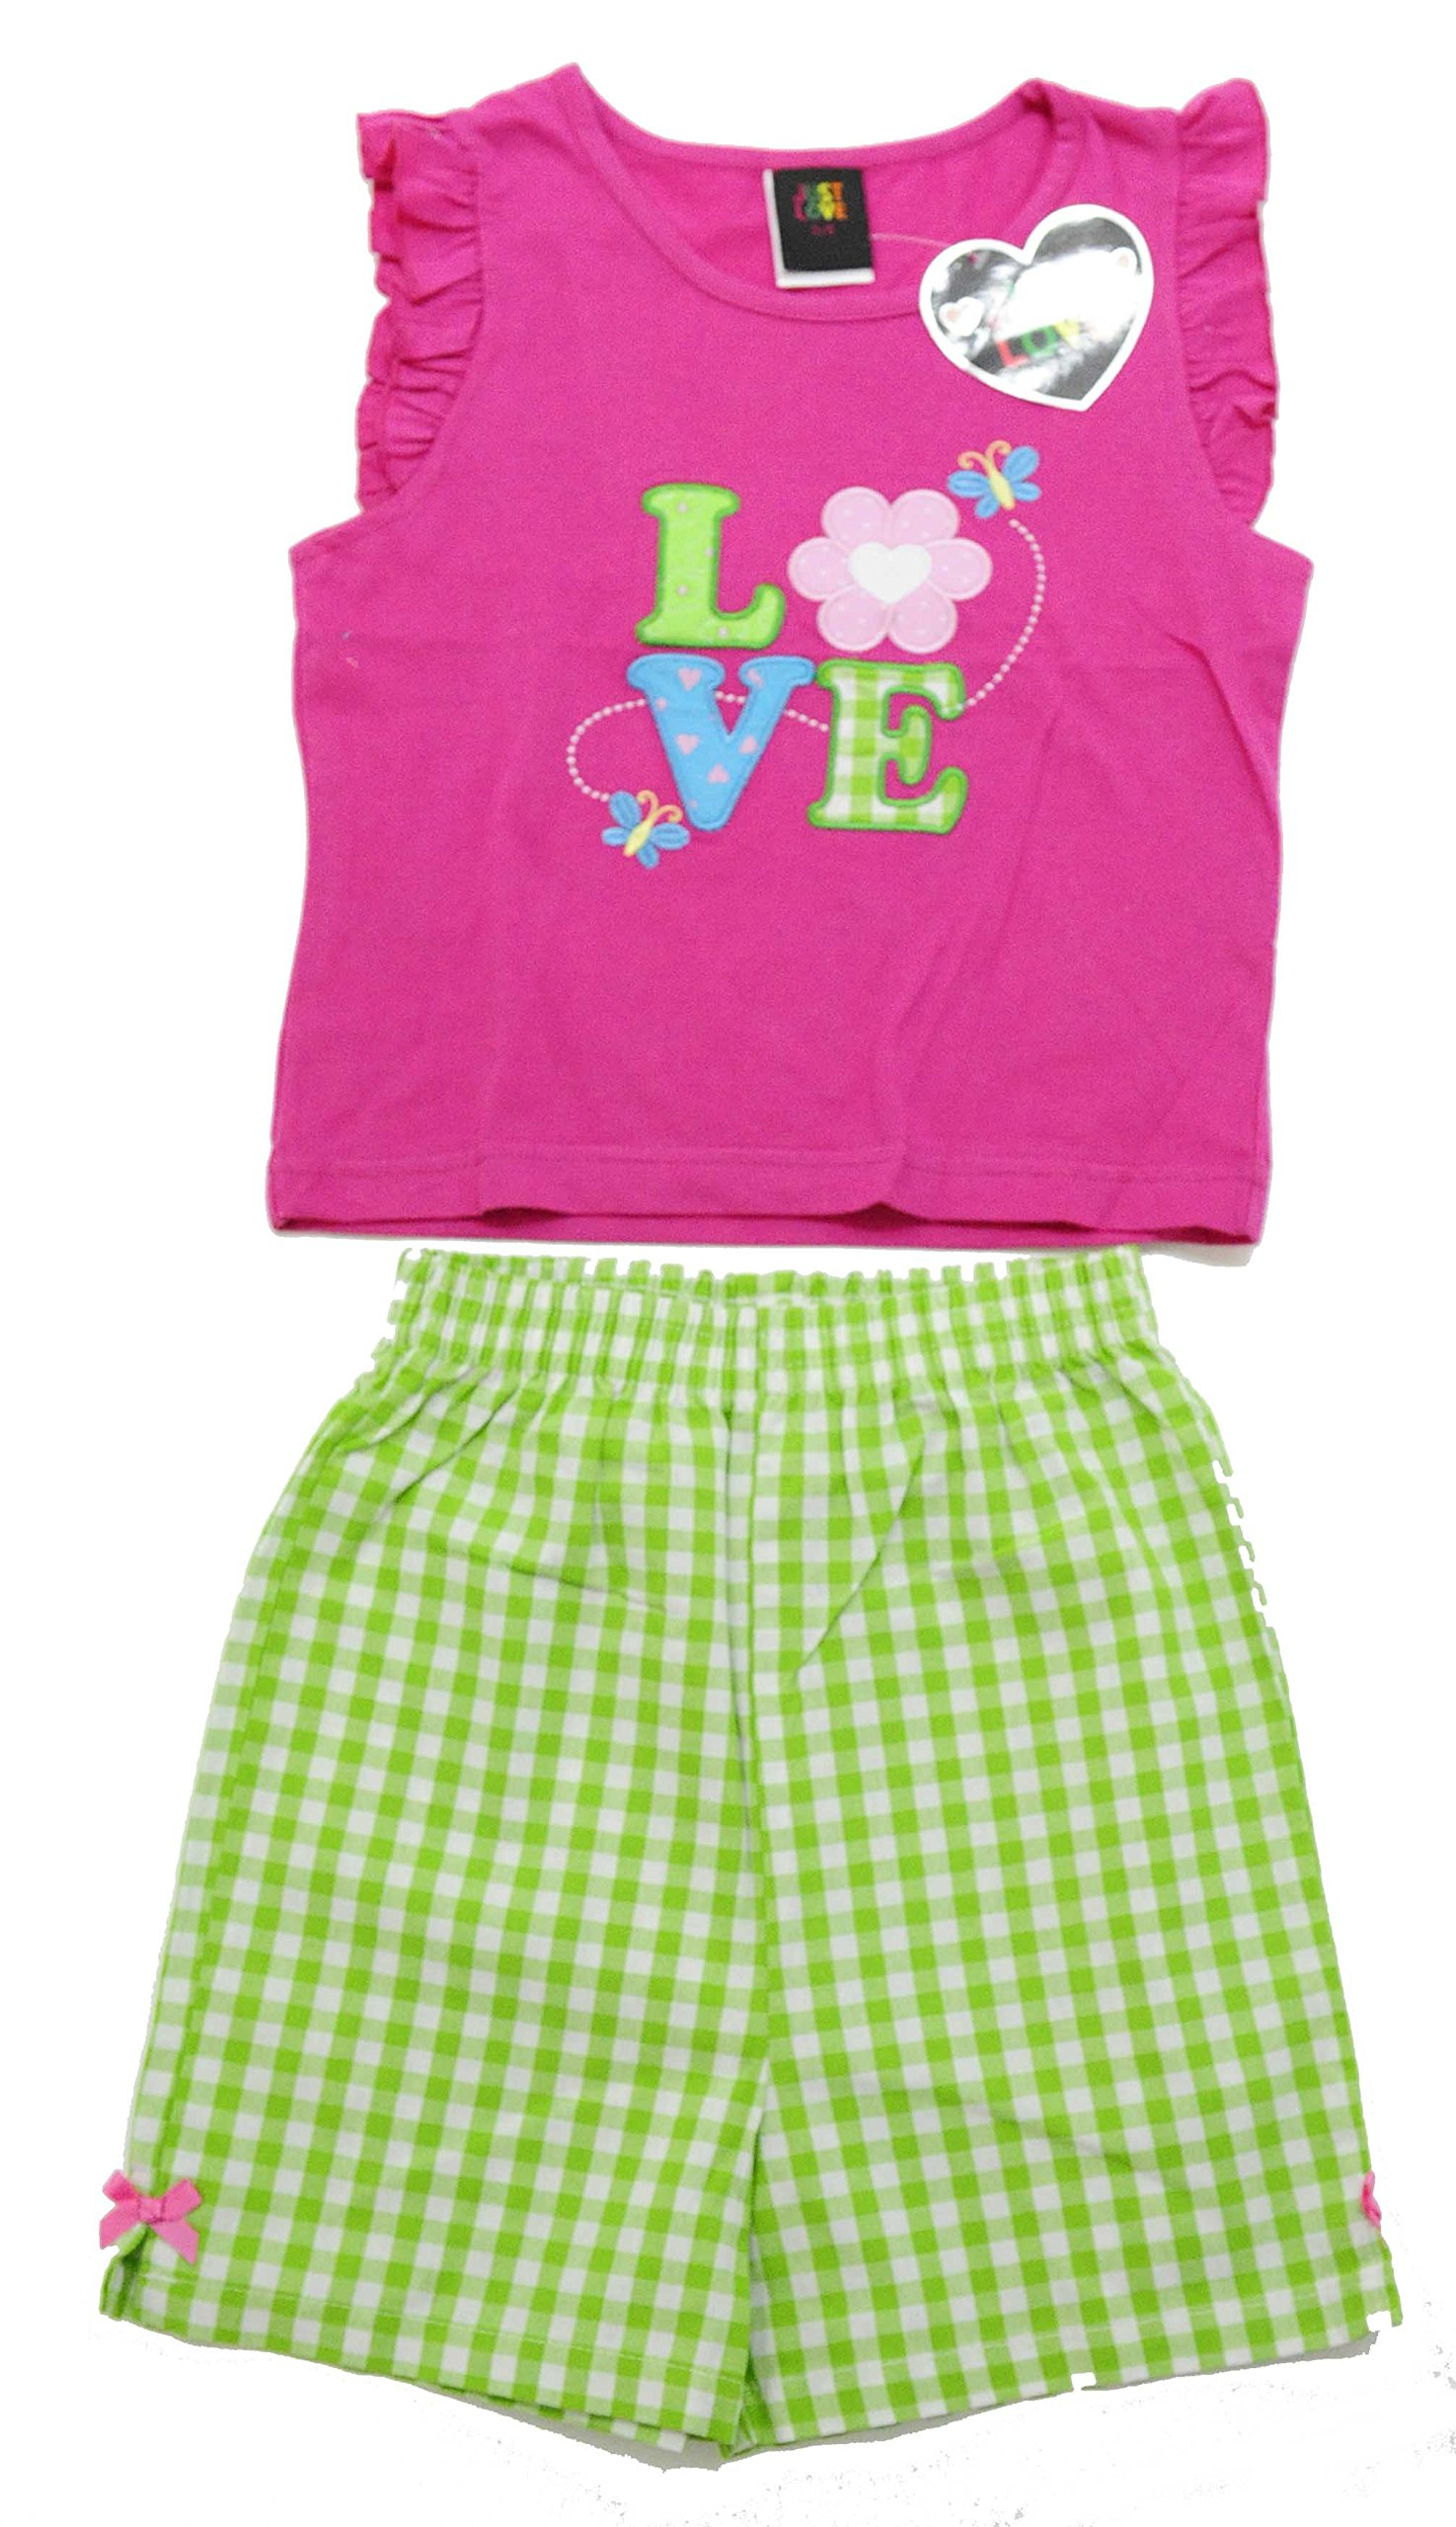 Just Love 4003-4 Two Piece Girls Shorts Set, Pink Love, 4